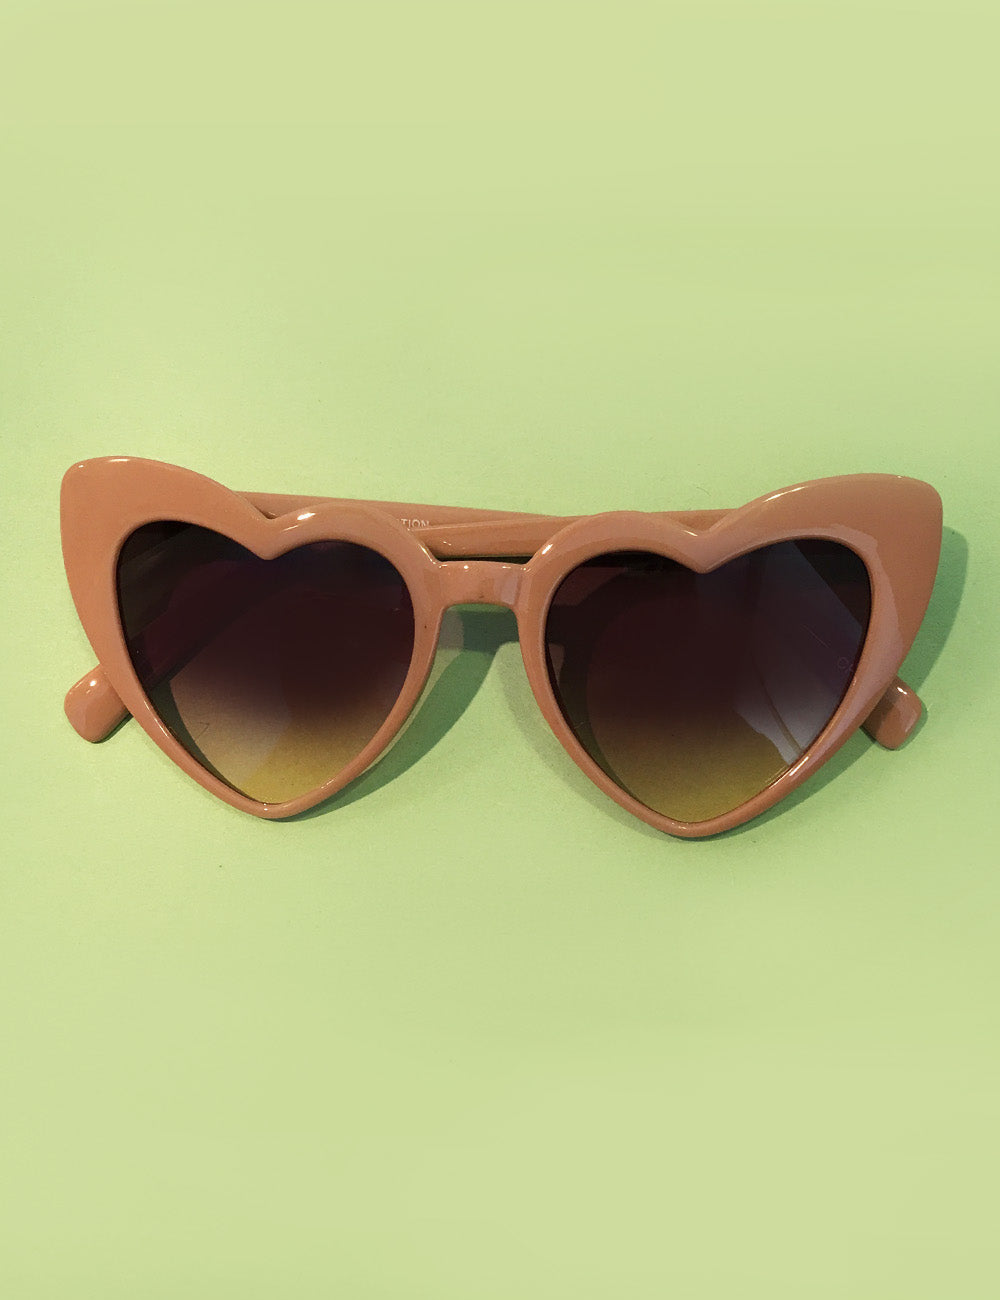 PREORDER - Neutral Tan Heart Shaped Retro Sunglasses